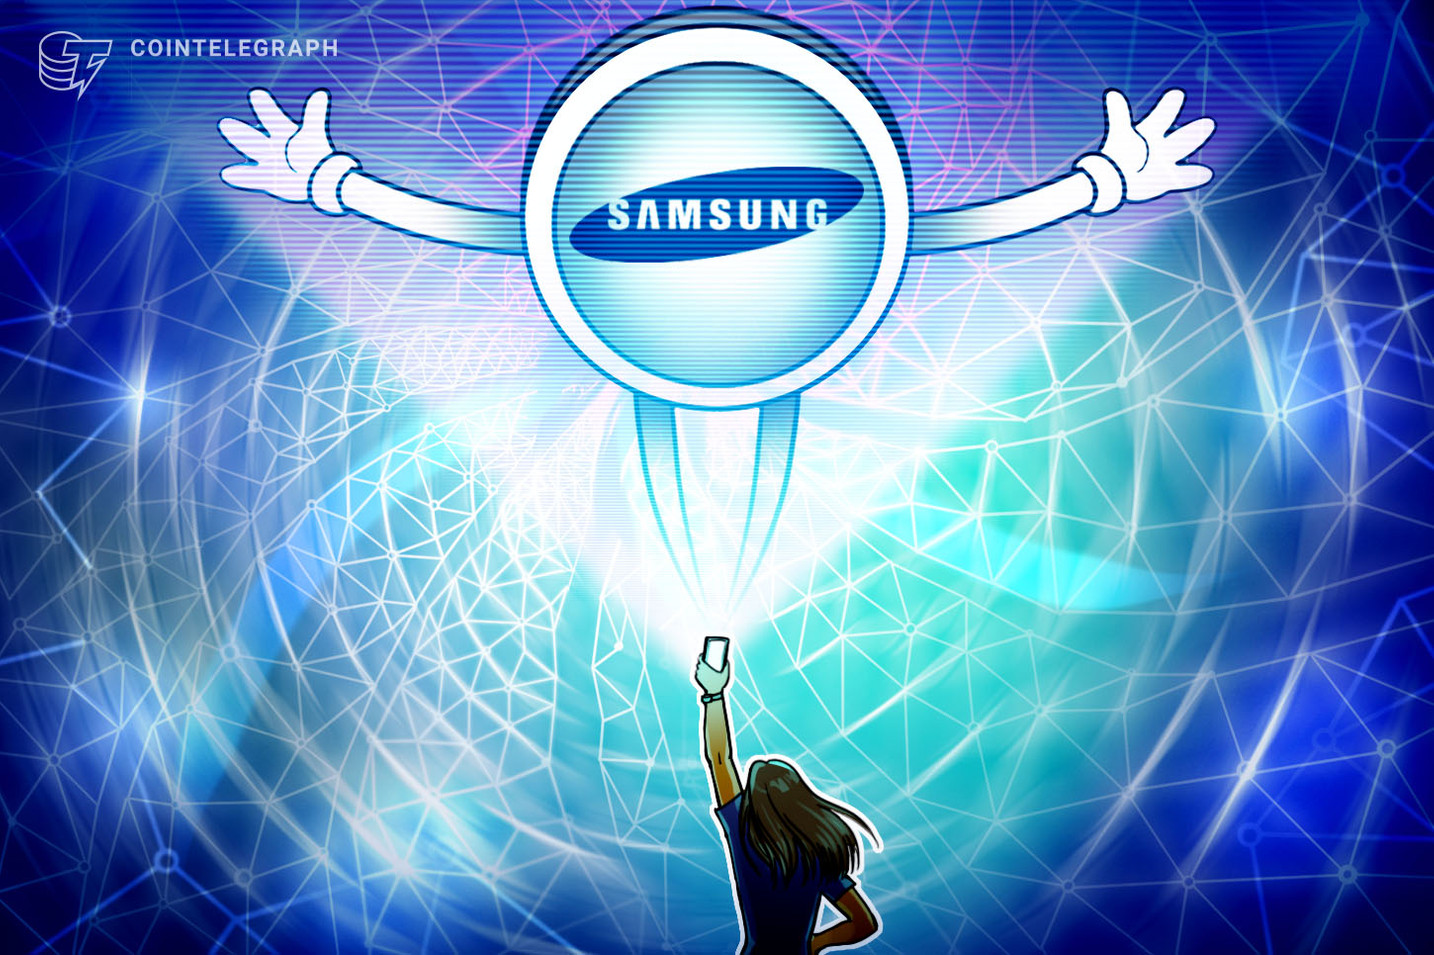 Samsung Joins Corporate Giants Reportedly Eyeing Bespoke Crypto